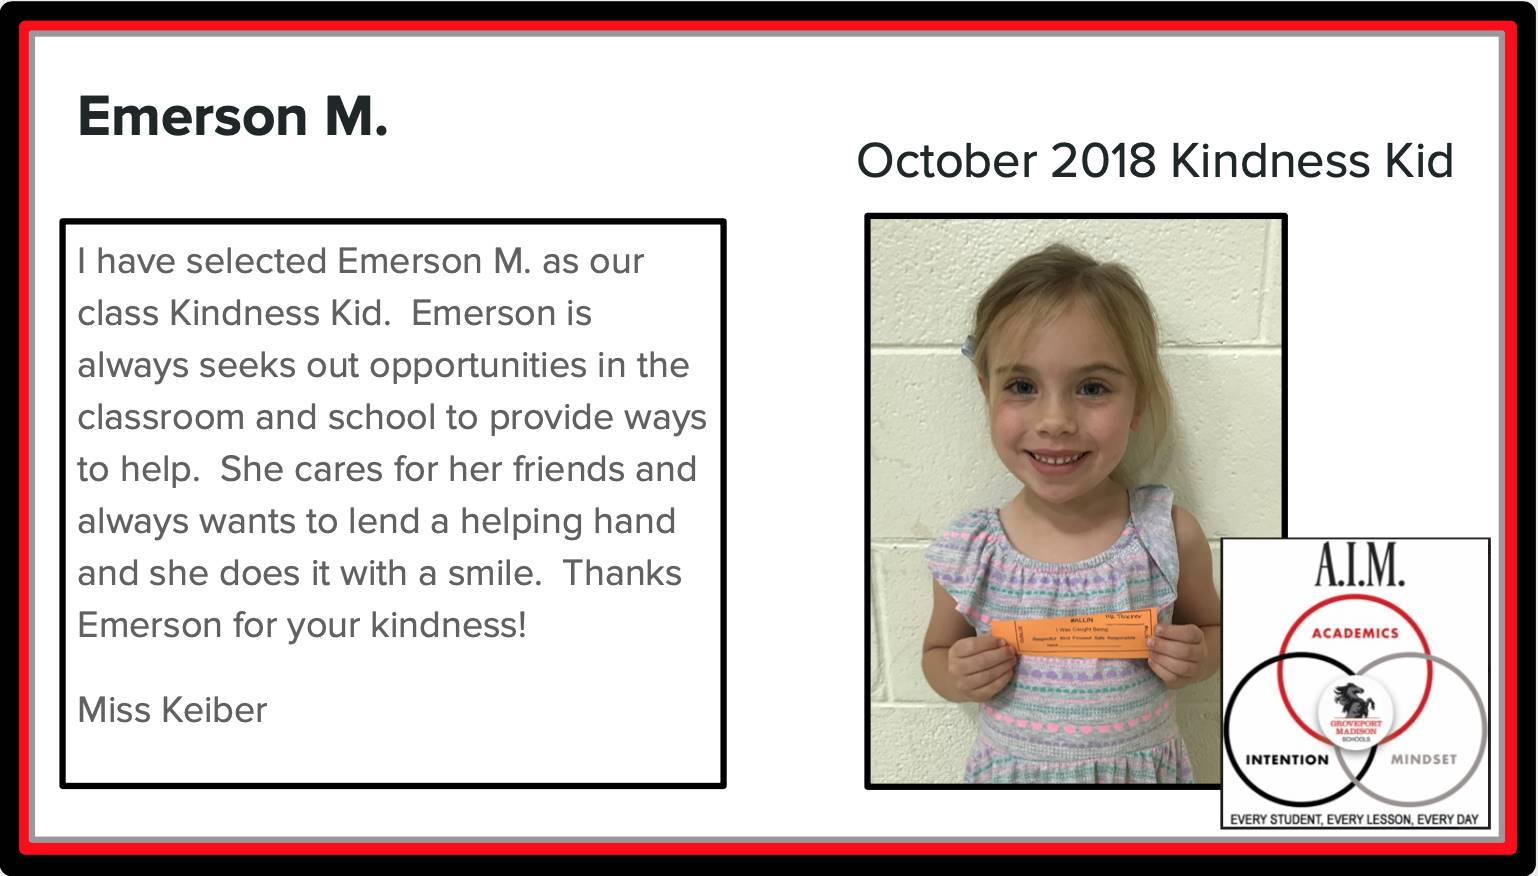 Kindness Kid Emerson